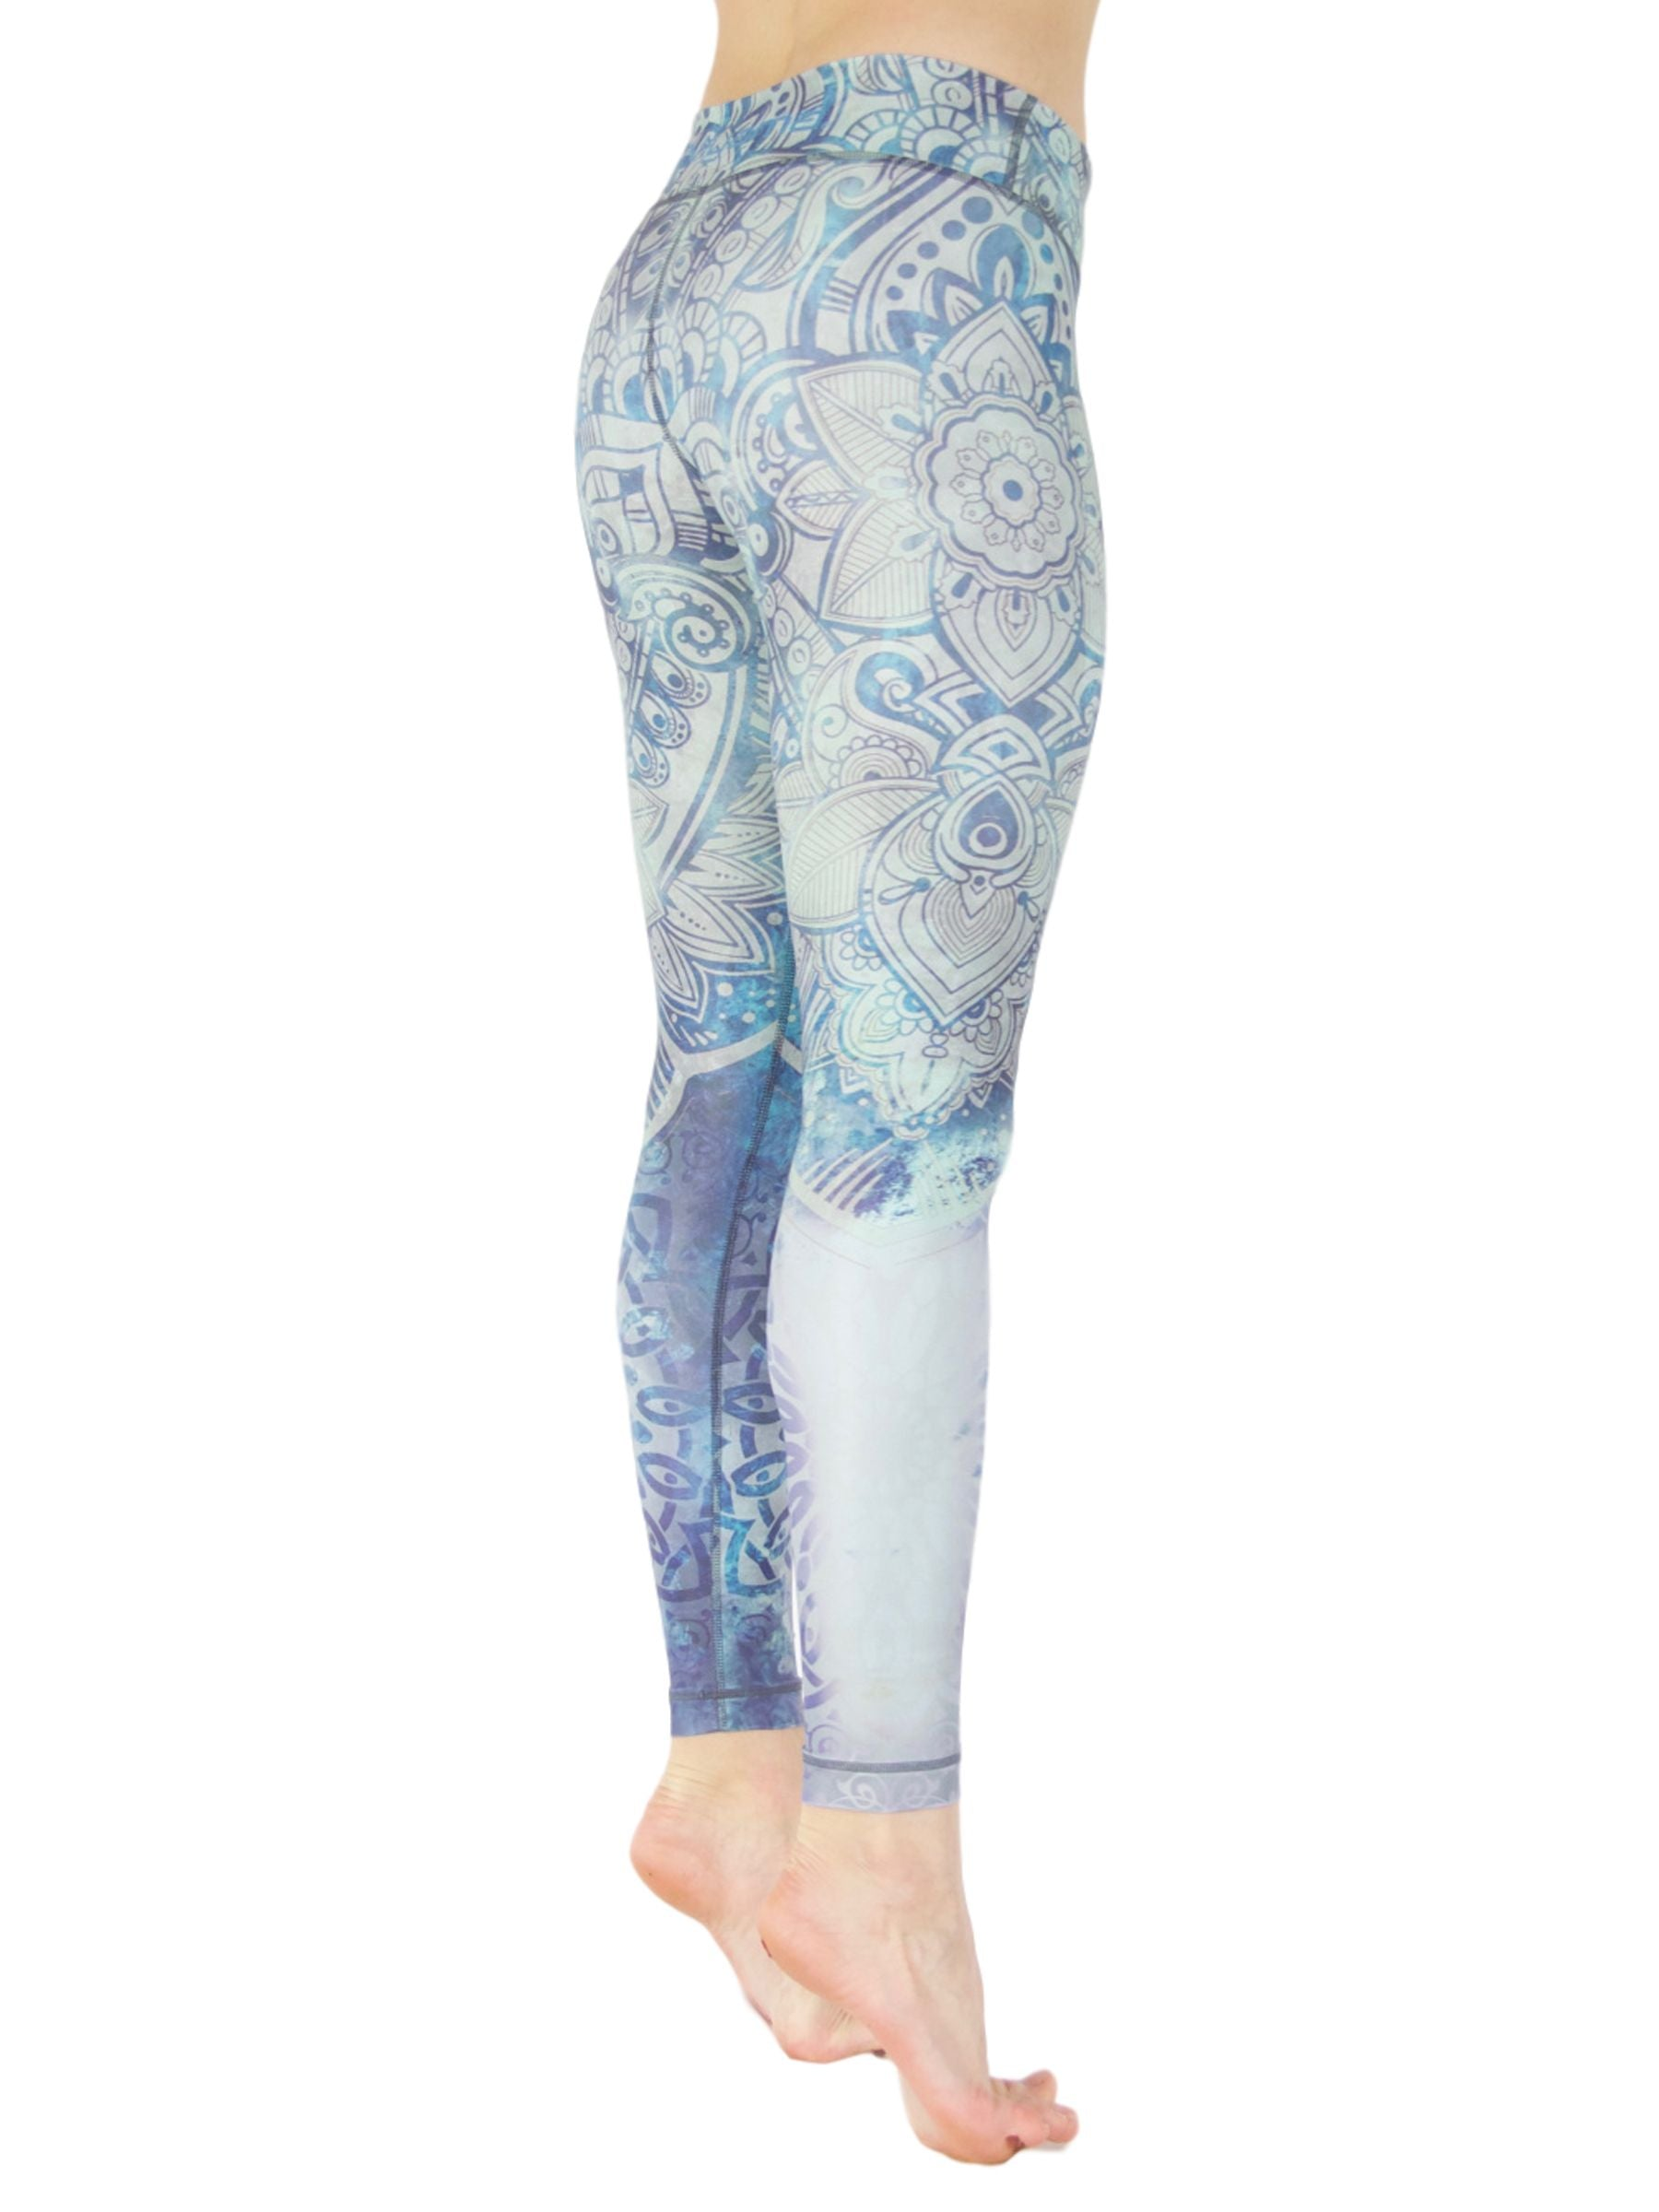 Namastey by Niyama - High Quality, Yoga Legging for Movement Artists.